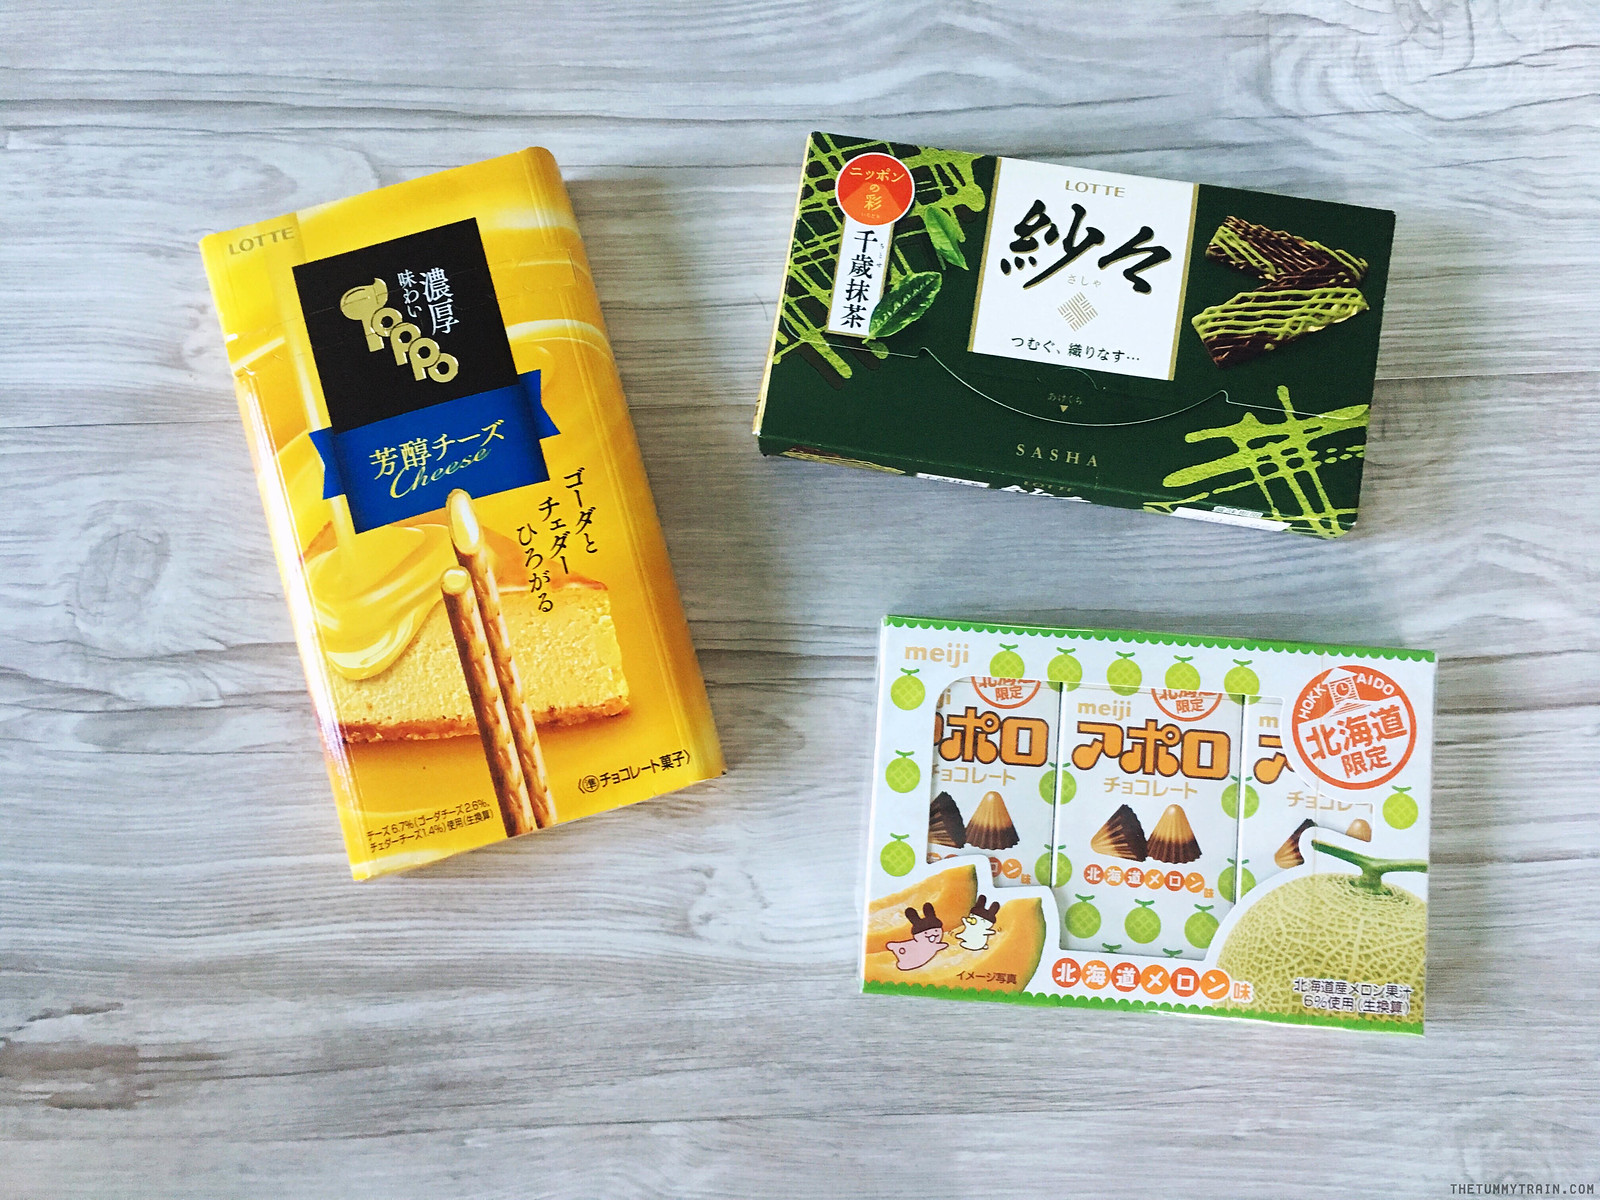 33125022865 38234e9b80 h - February 2017 Japanese Snack Haul from Sapporo [Vol. 3]